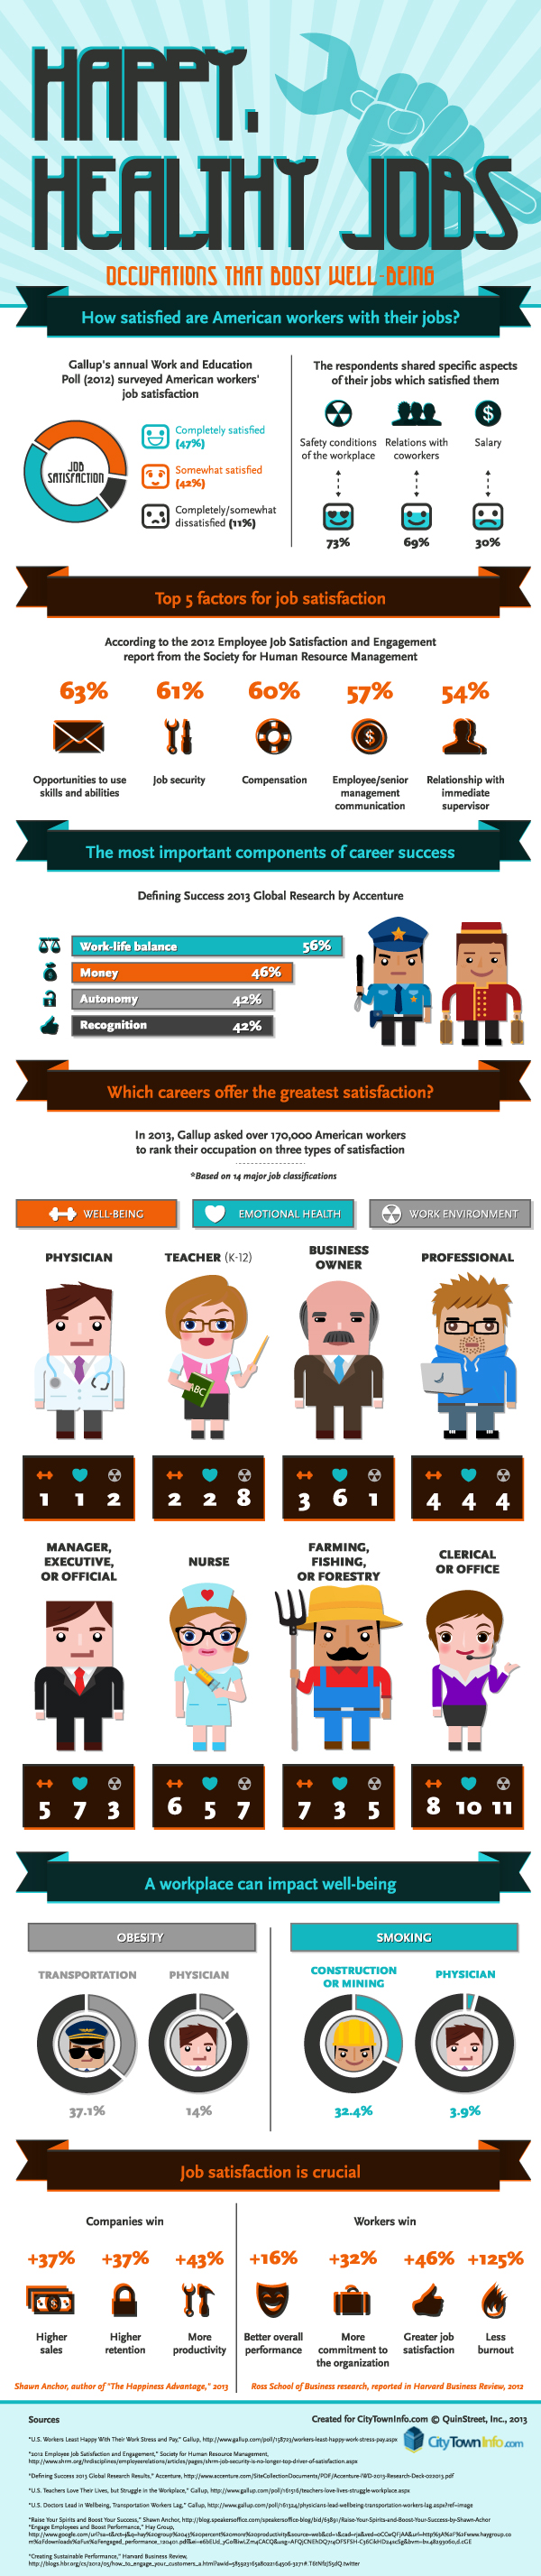 Careers That Offer Great Job Satisfaction